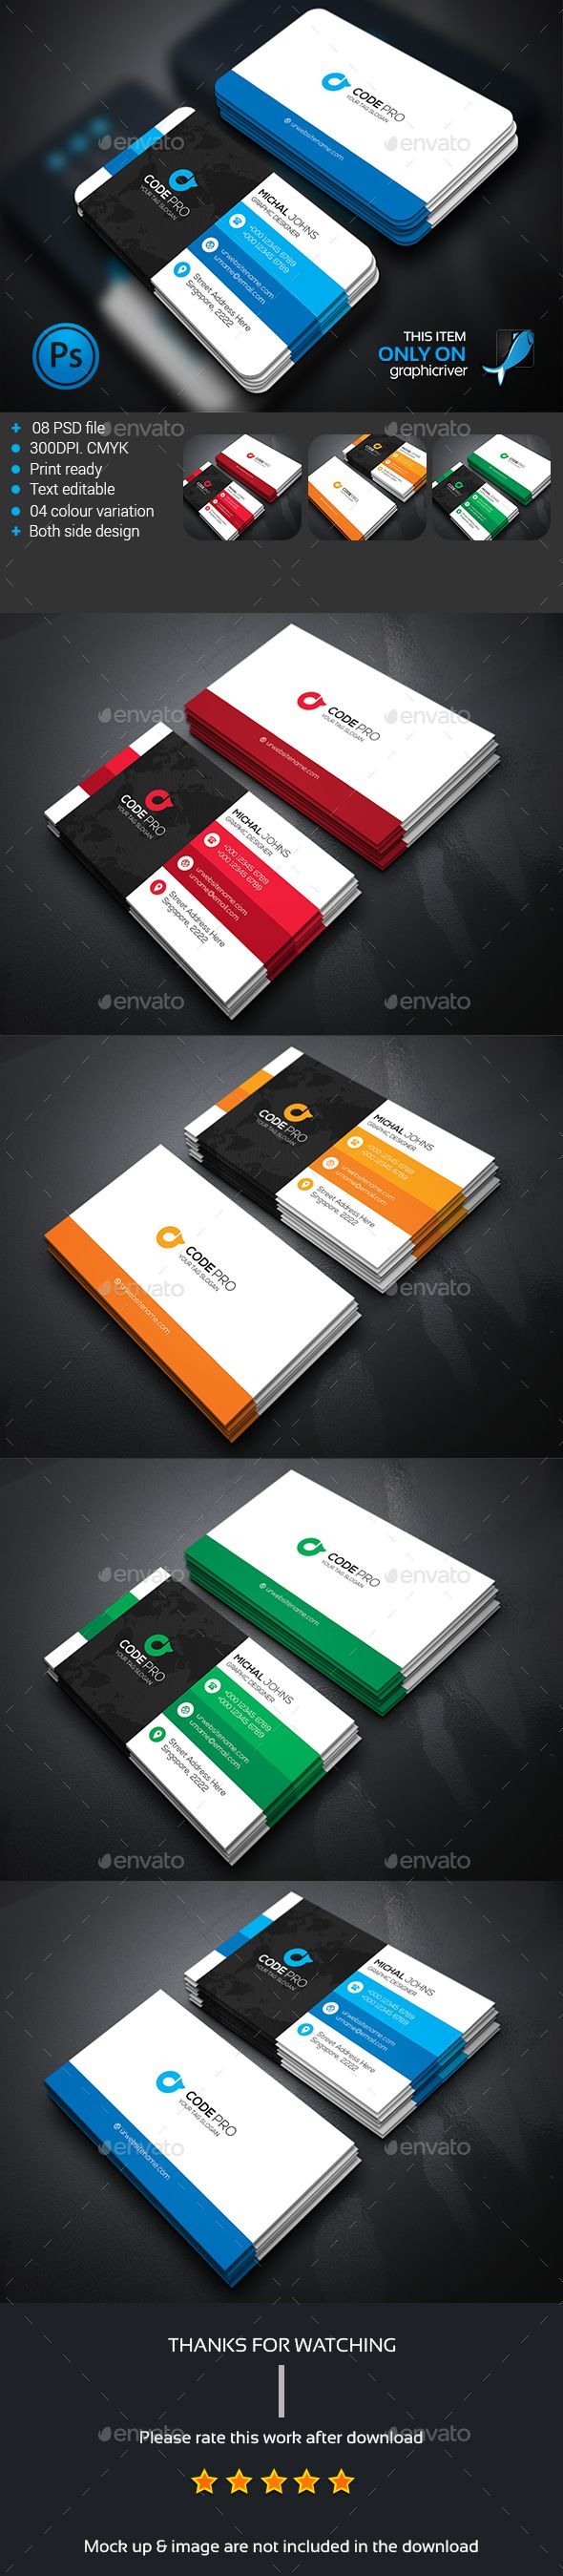 Mega Corporate Business Card Template PSD Design Download Http - Buy business card template